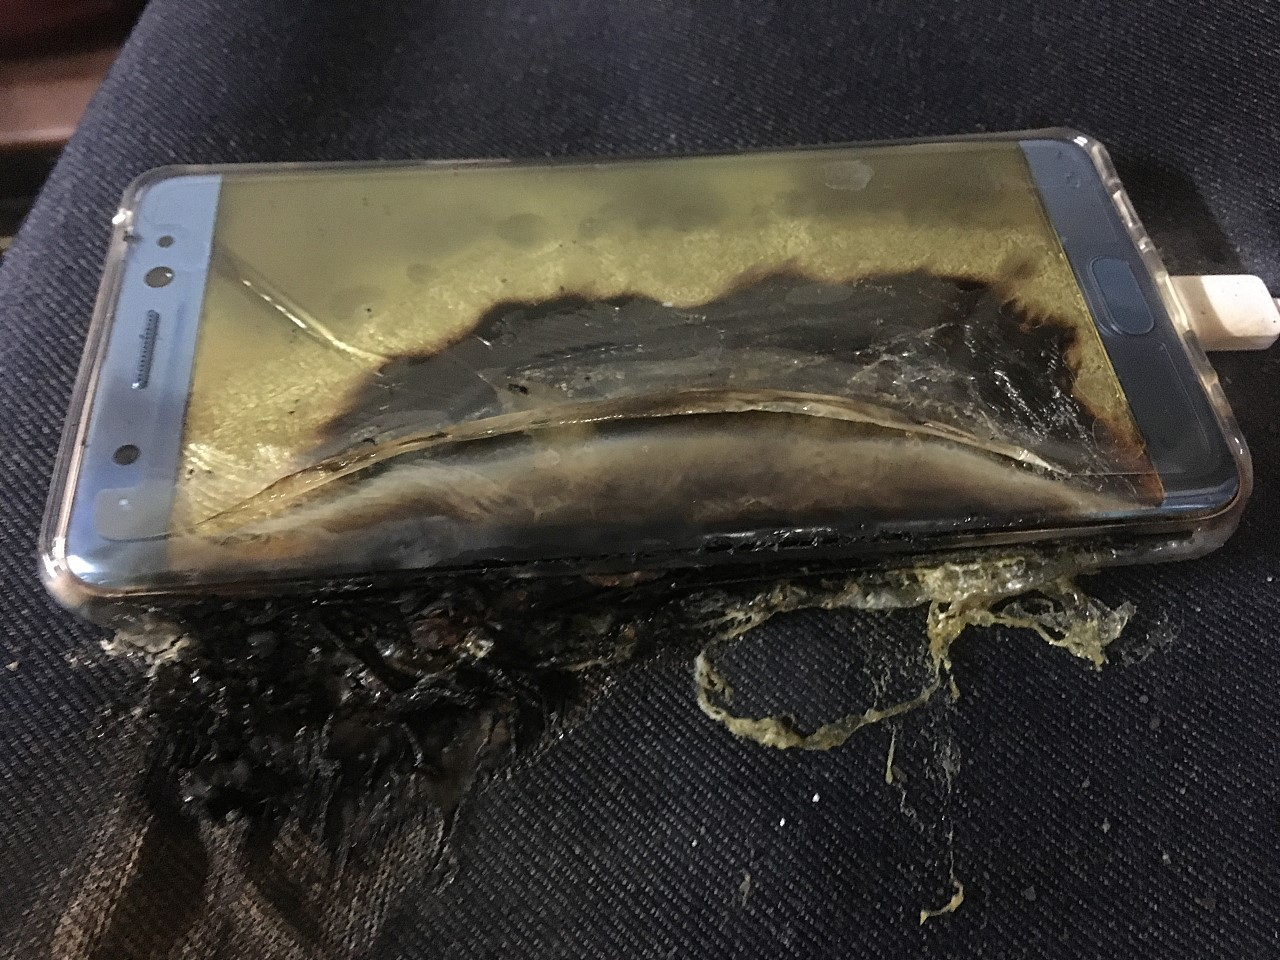 A charred Galaxy Note 7.